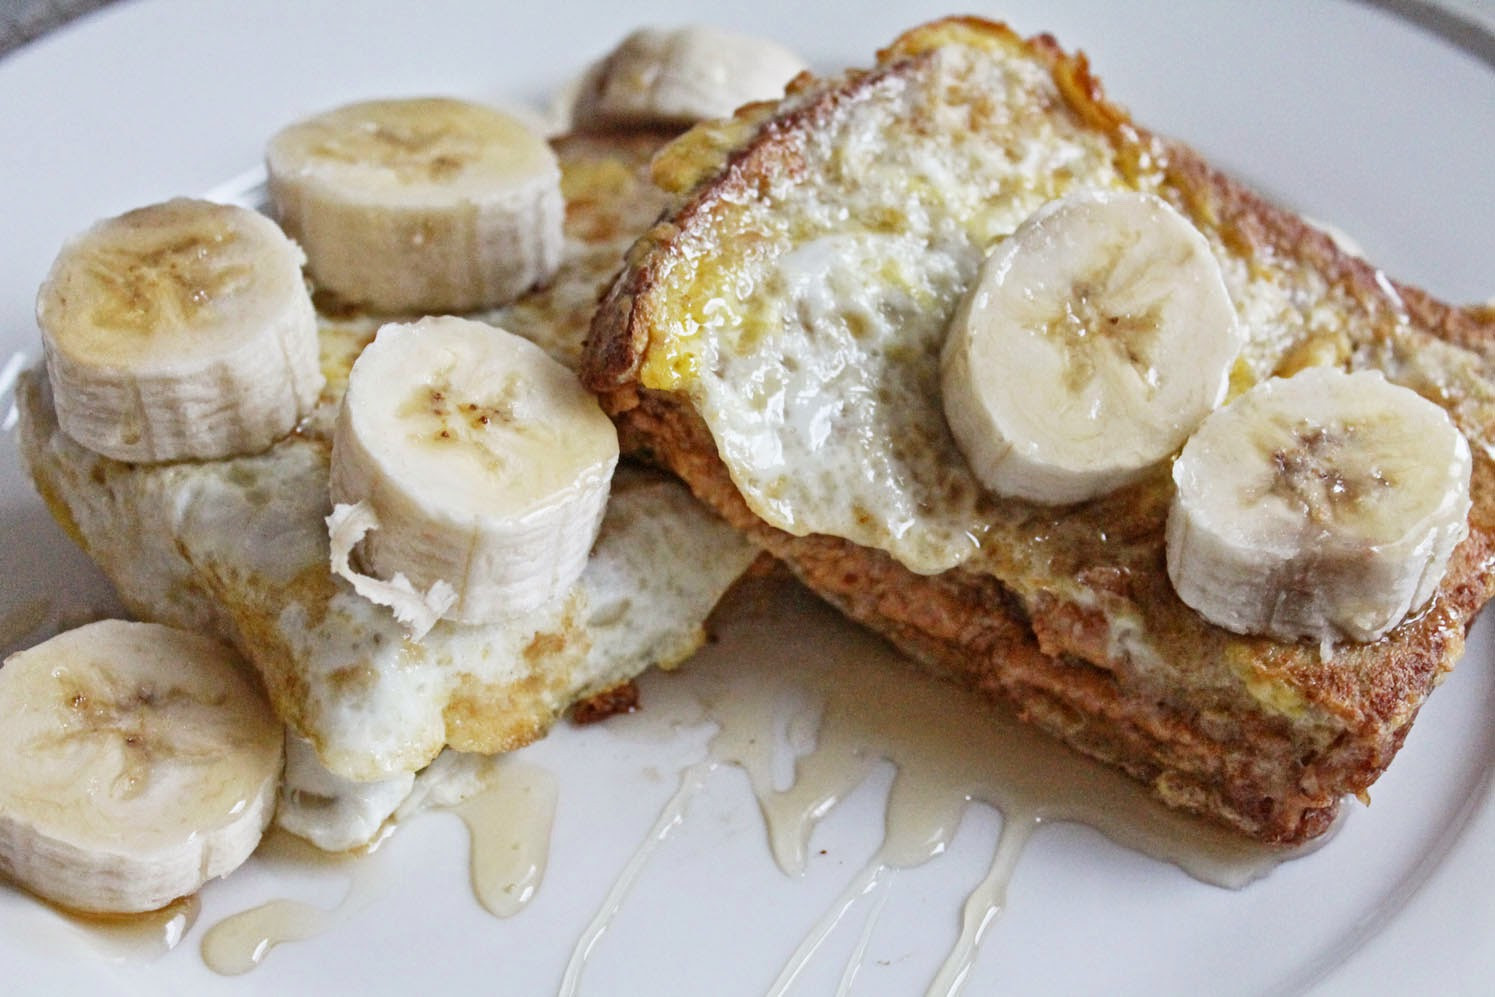 Easy Healthy Breakfast  Easy Healthy Breakfast Recipe All Natural Peanut Butter